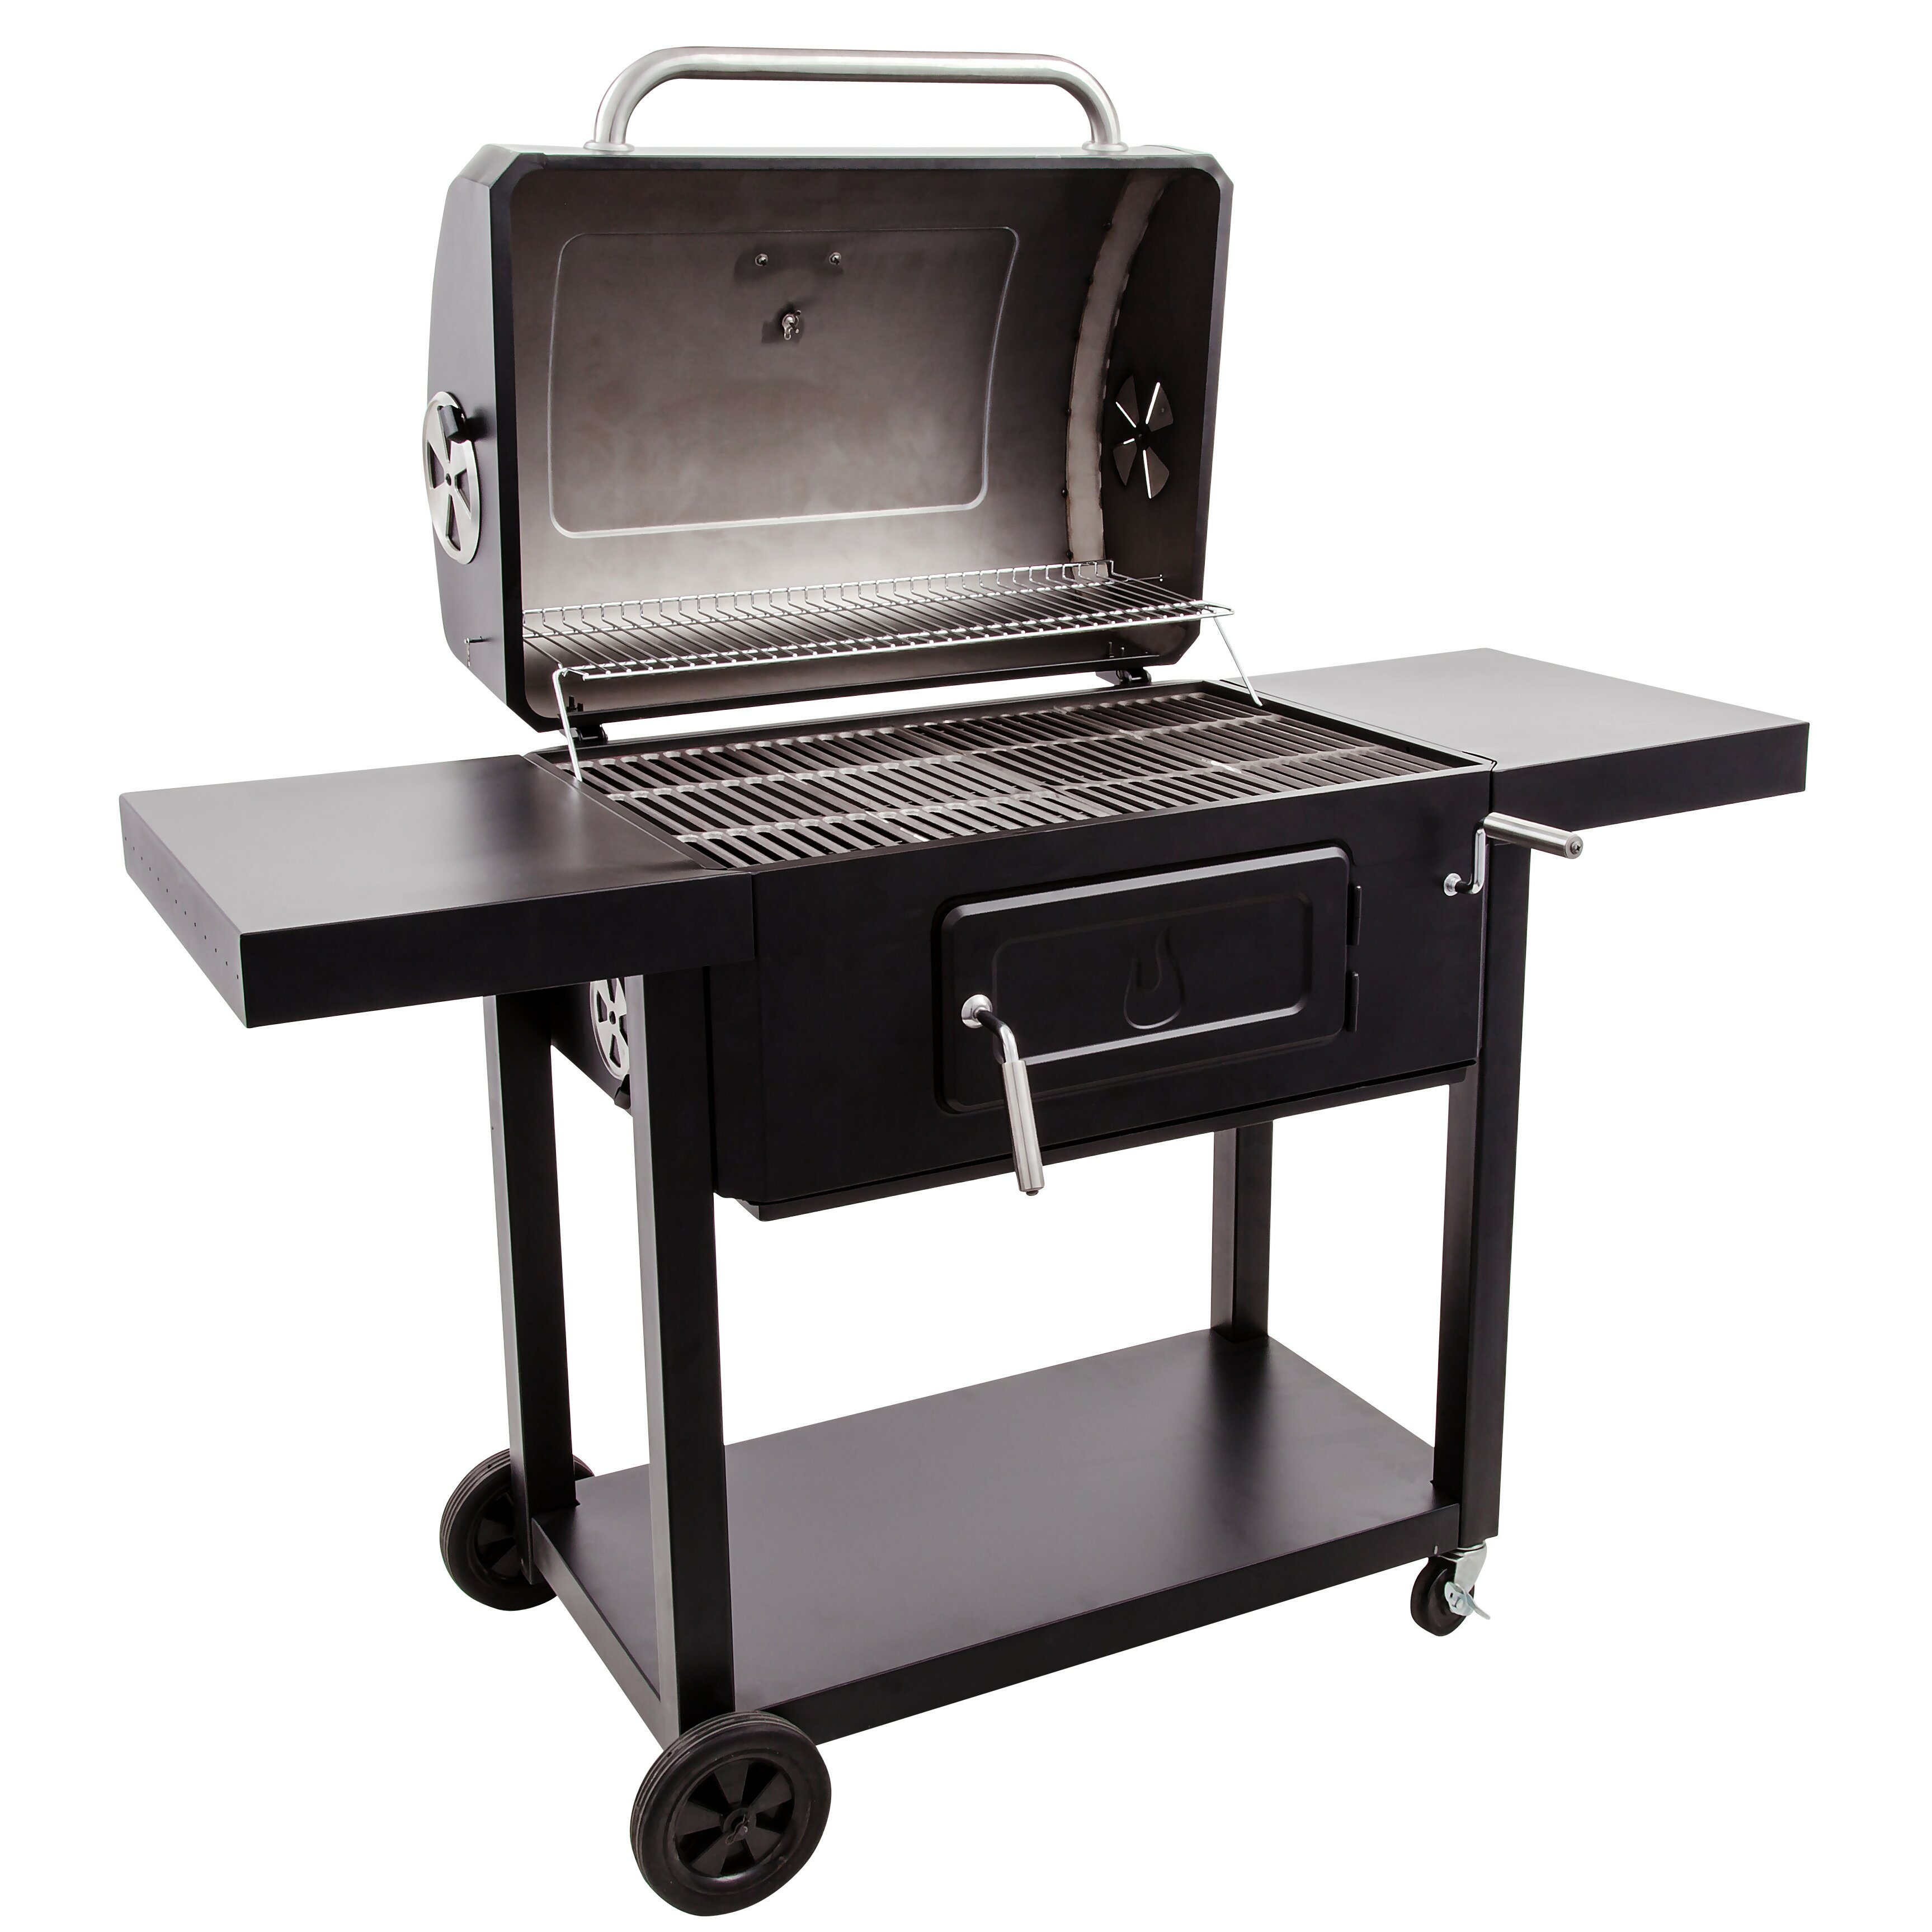 charbroil free standing charcoal grill reviews. Black Bedroom Furniture Sets. Home Design Ideas